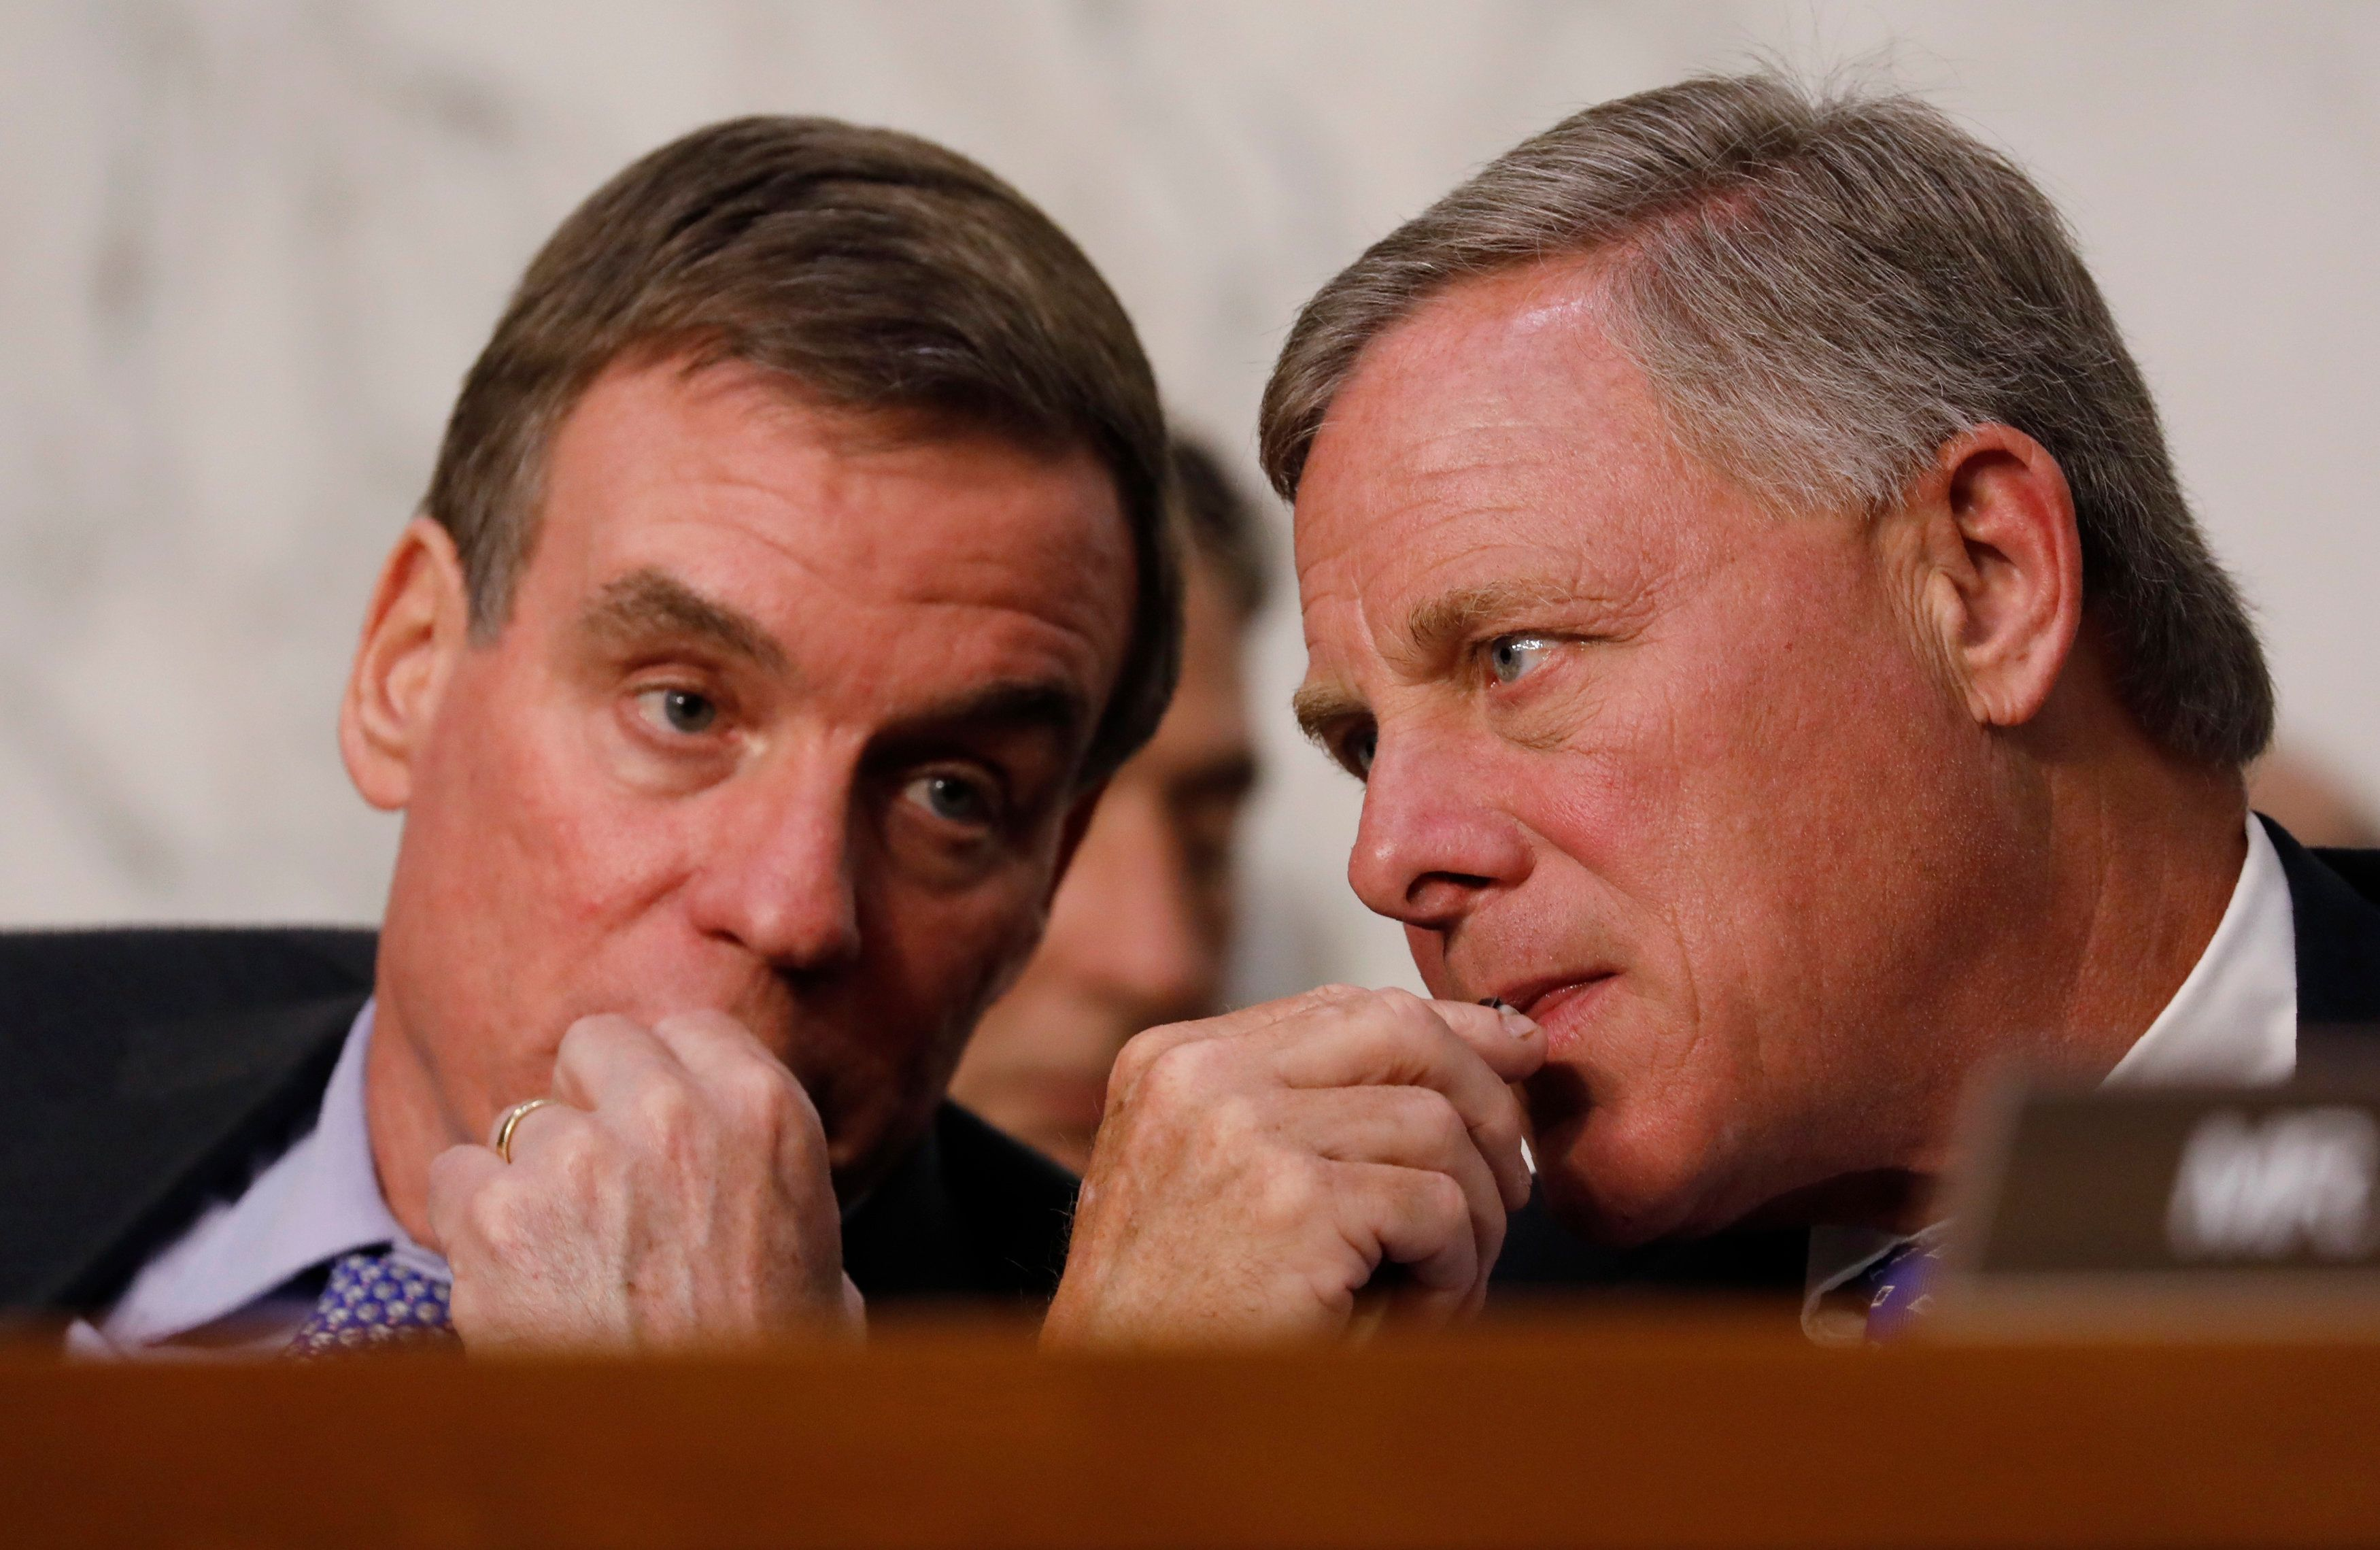 Committee Vice Chairman and ranking member Senator Mark Warner (L) and Chairman Richard Burr (R) listen as U.S. Attorney General Jeff Sessions testifies before a Senate Intelligence Committee hearing on Capitol Hill in Washington, U.S., June 13, 2017. REUTERS/Aaron P. Bernstein